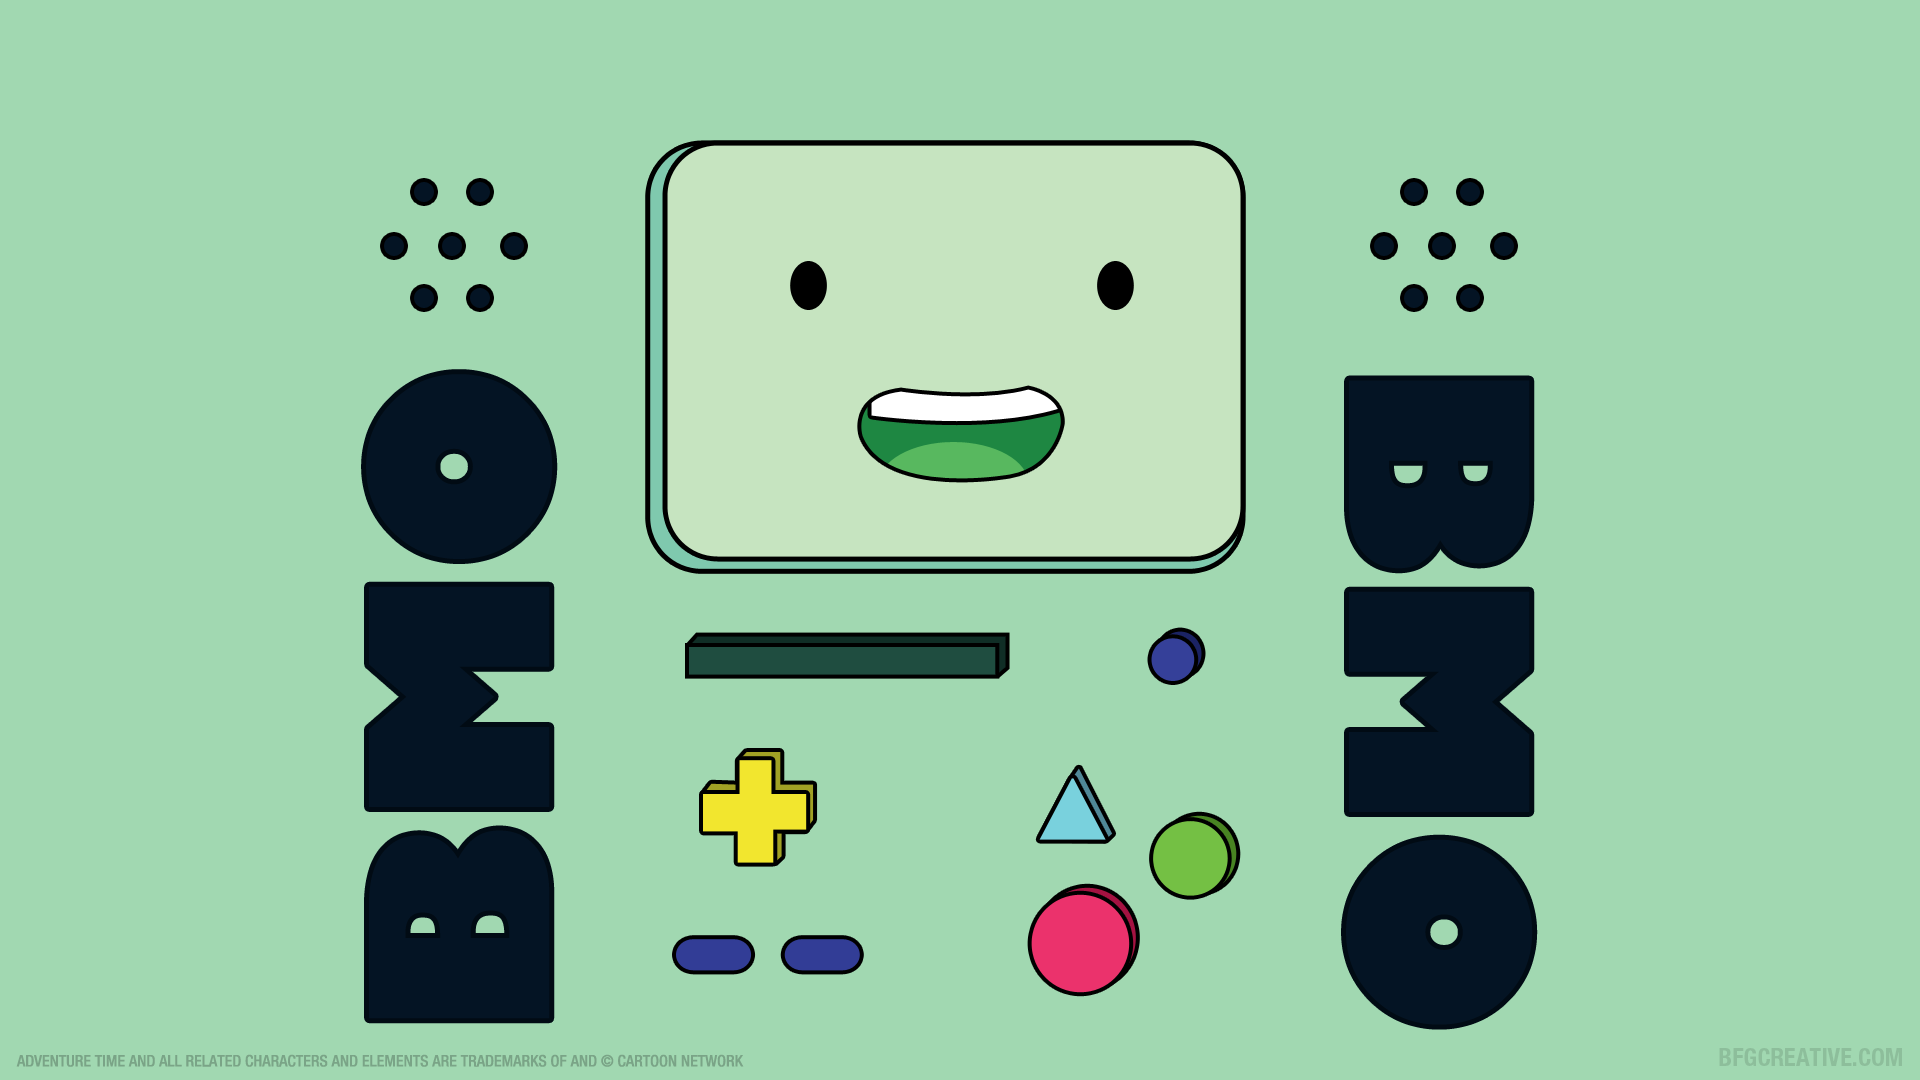 1920x1080 wallpaper of Beemo (BMO) from 'Adventure Time